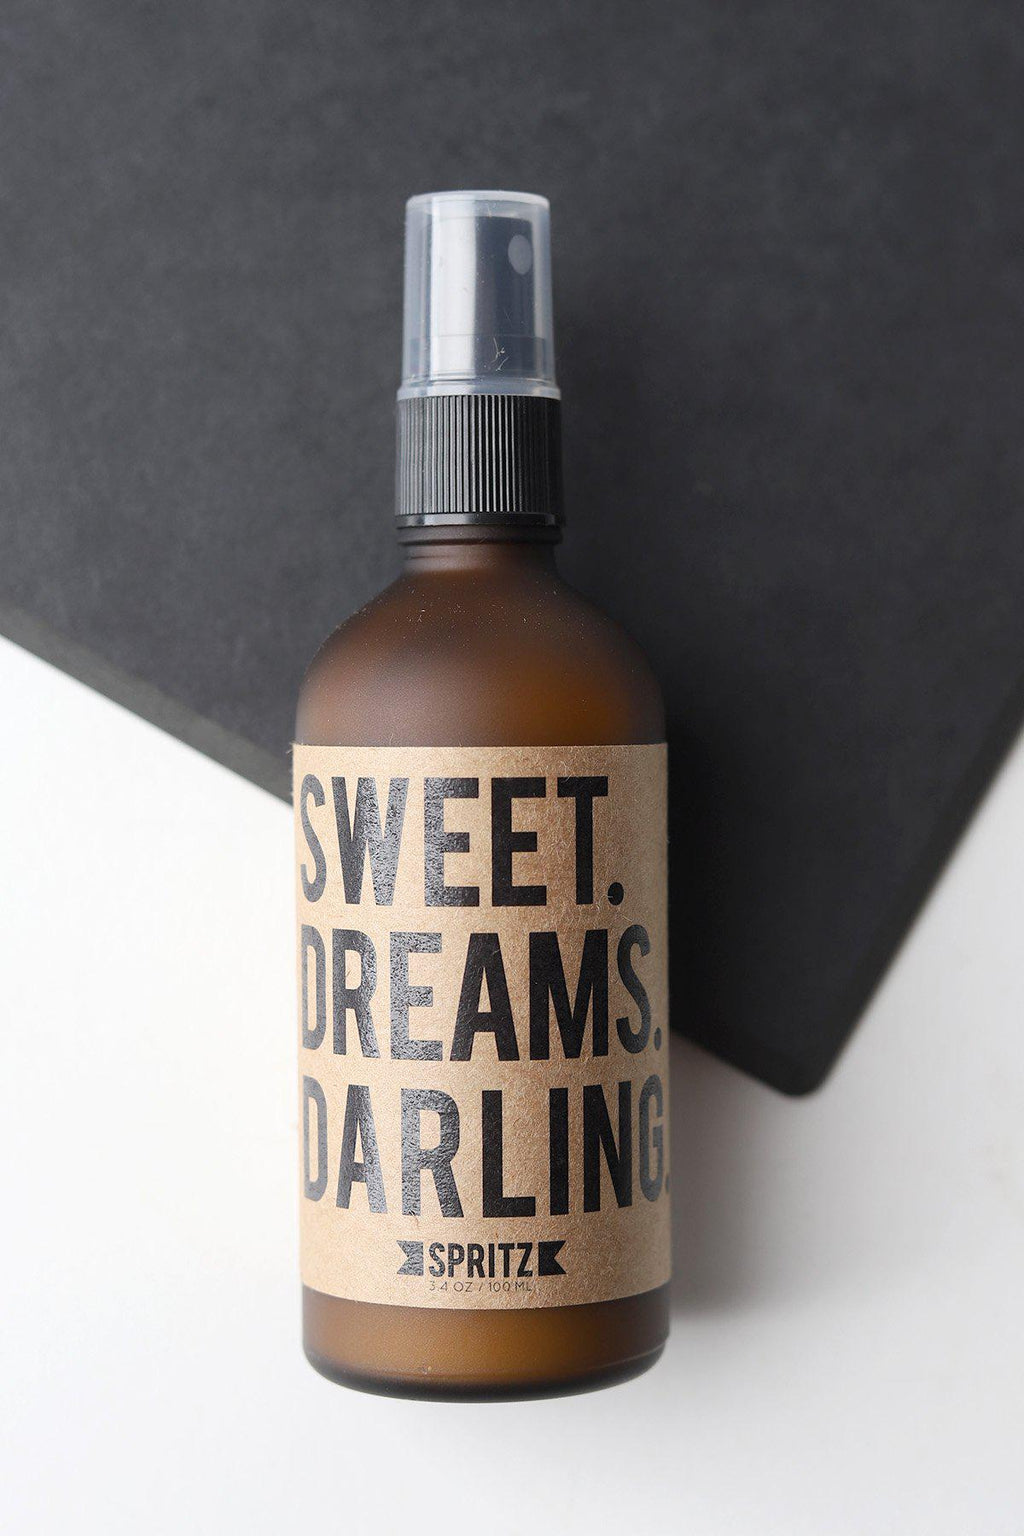 Sweet Dreams Darling Essential Oil Spritz by Happy Spritz